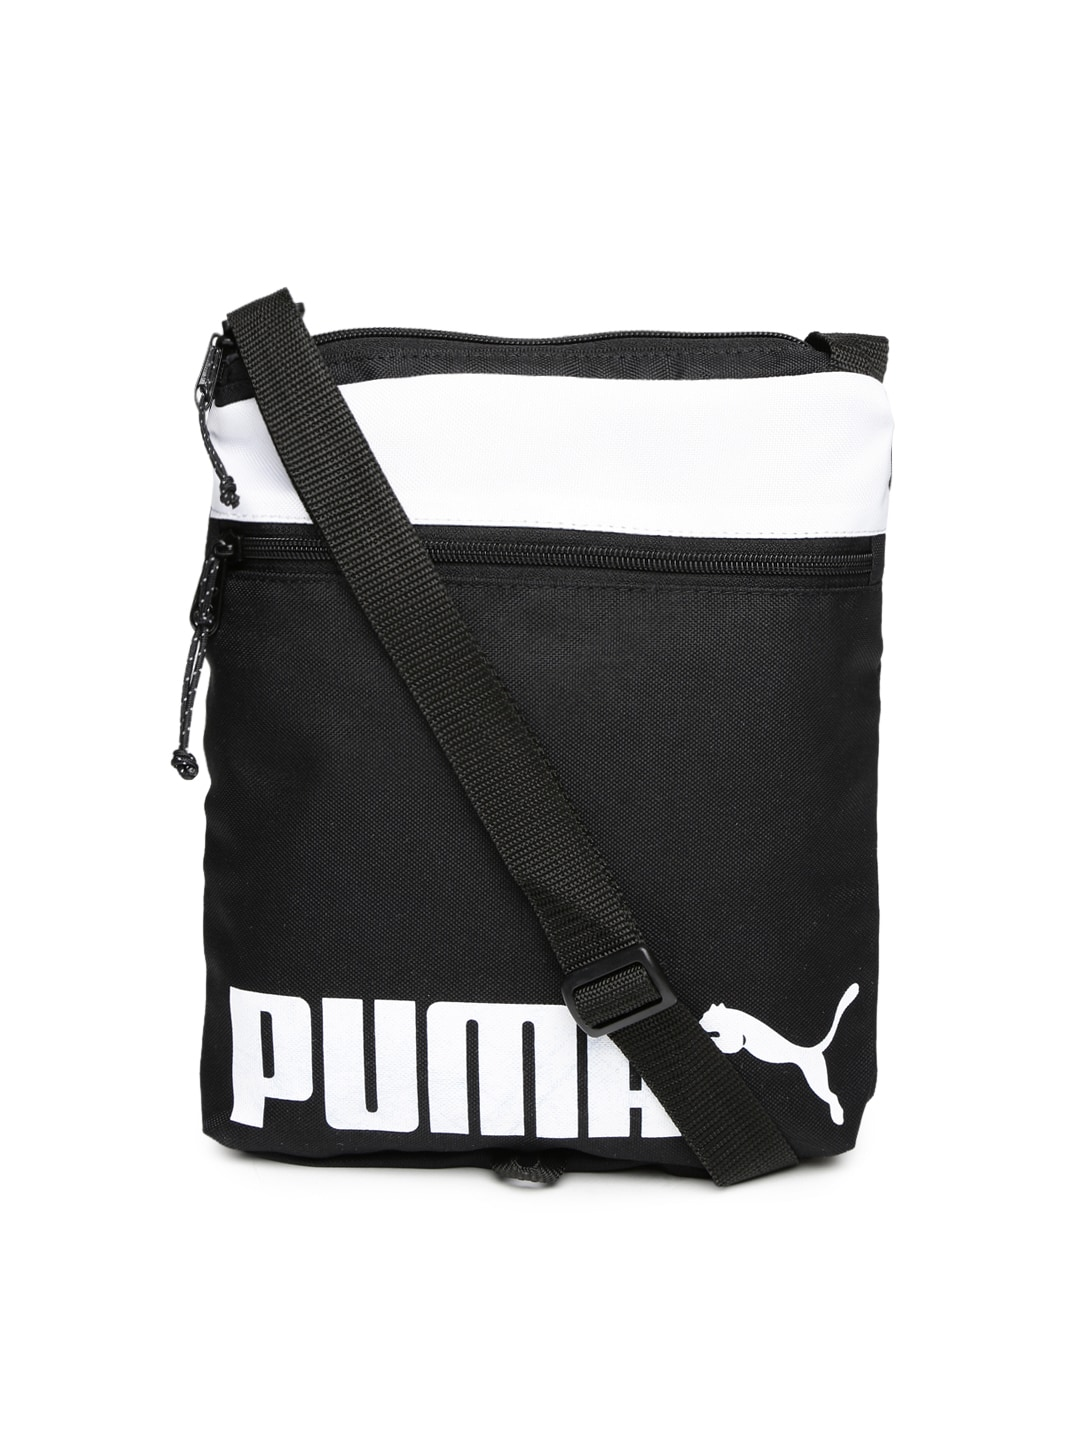 dc85322992 Football Puma Messenger Bags - Buy Football Puma Messenger Bags online in  India